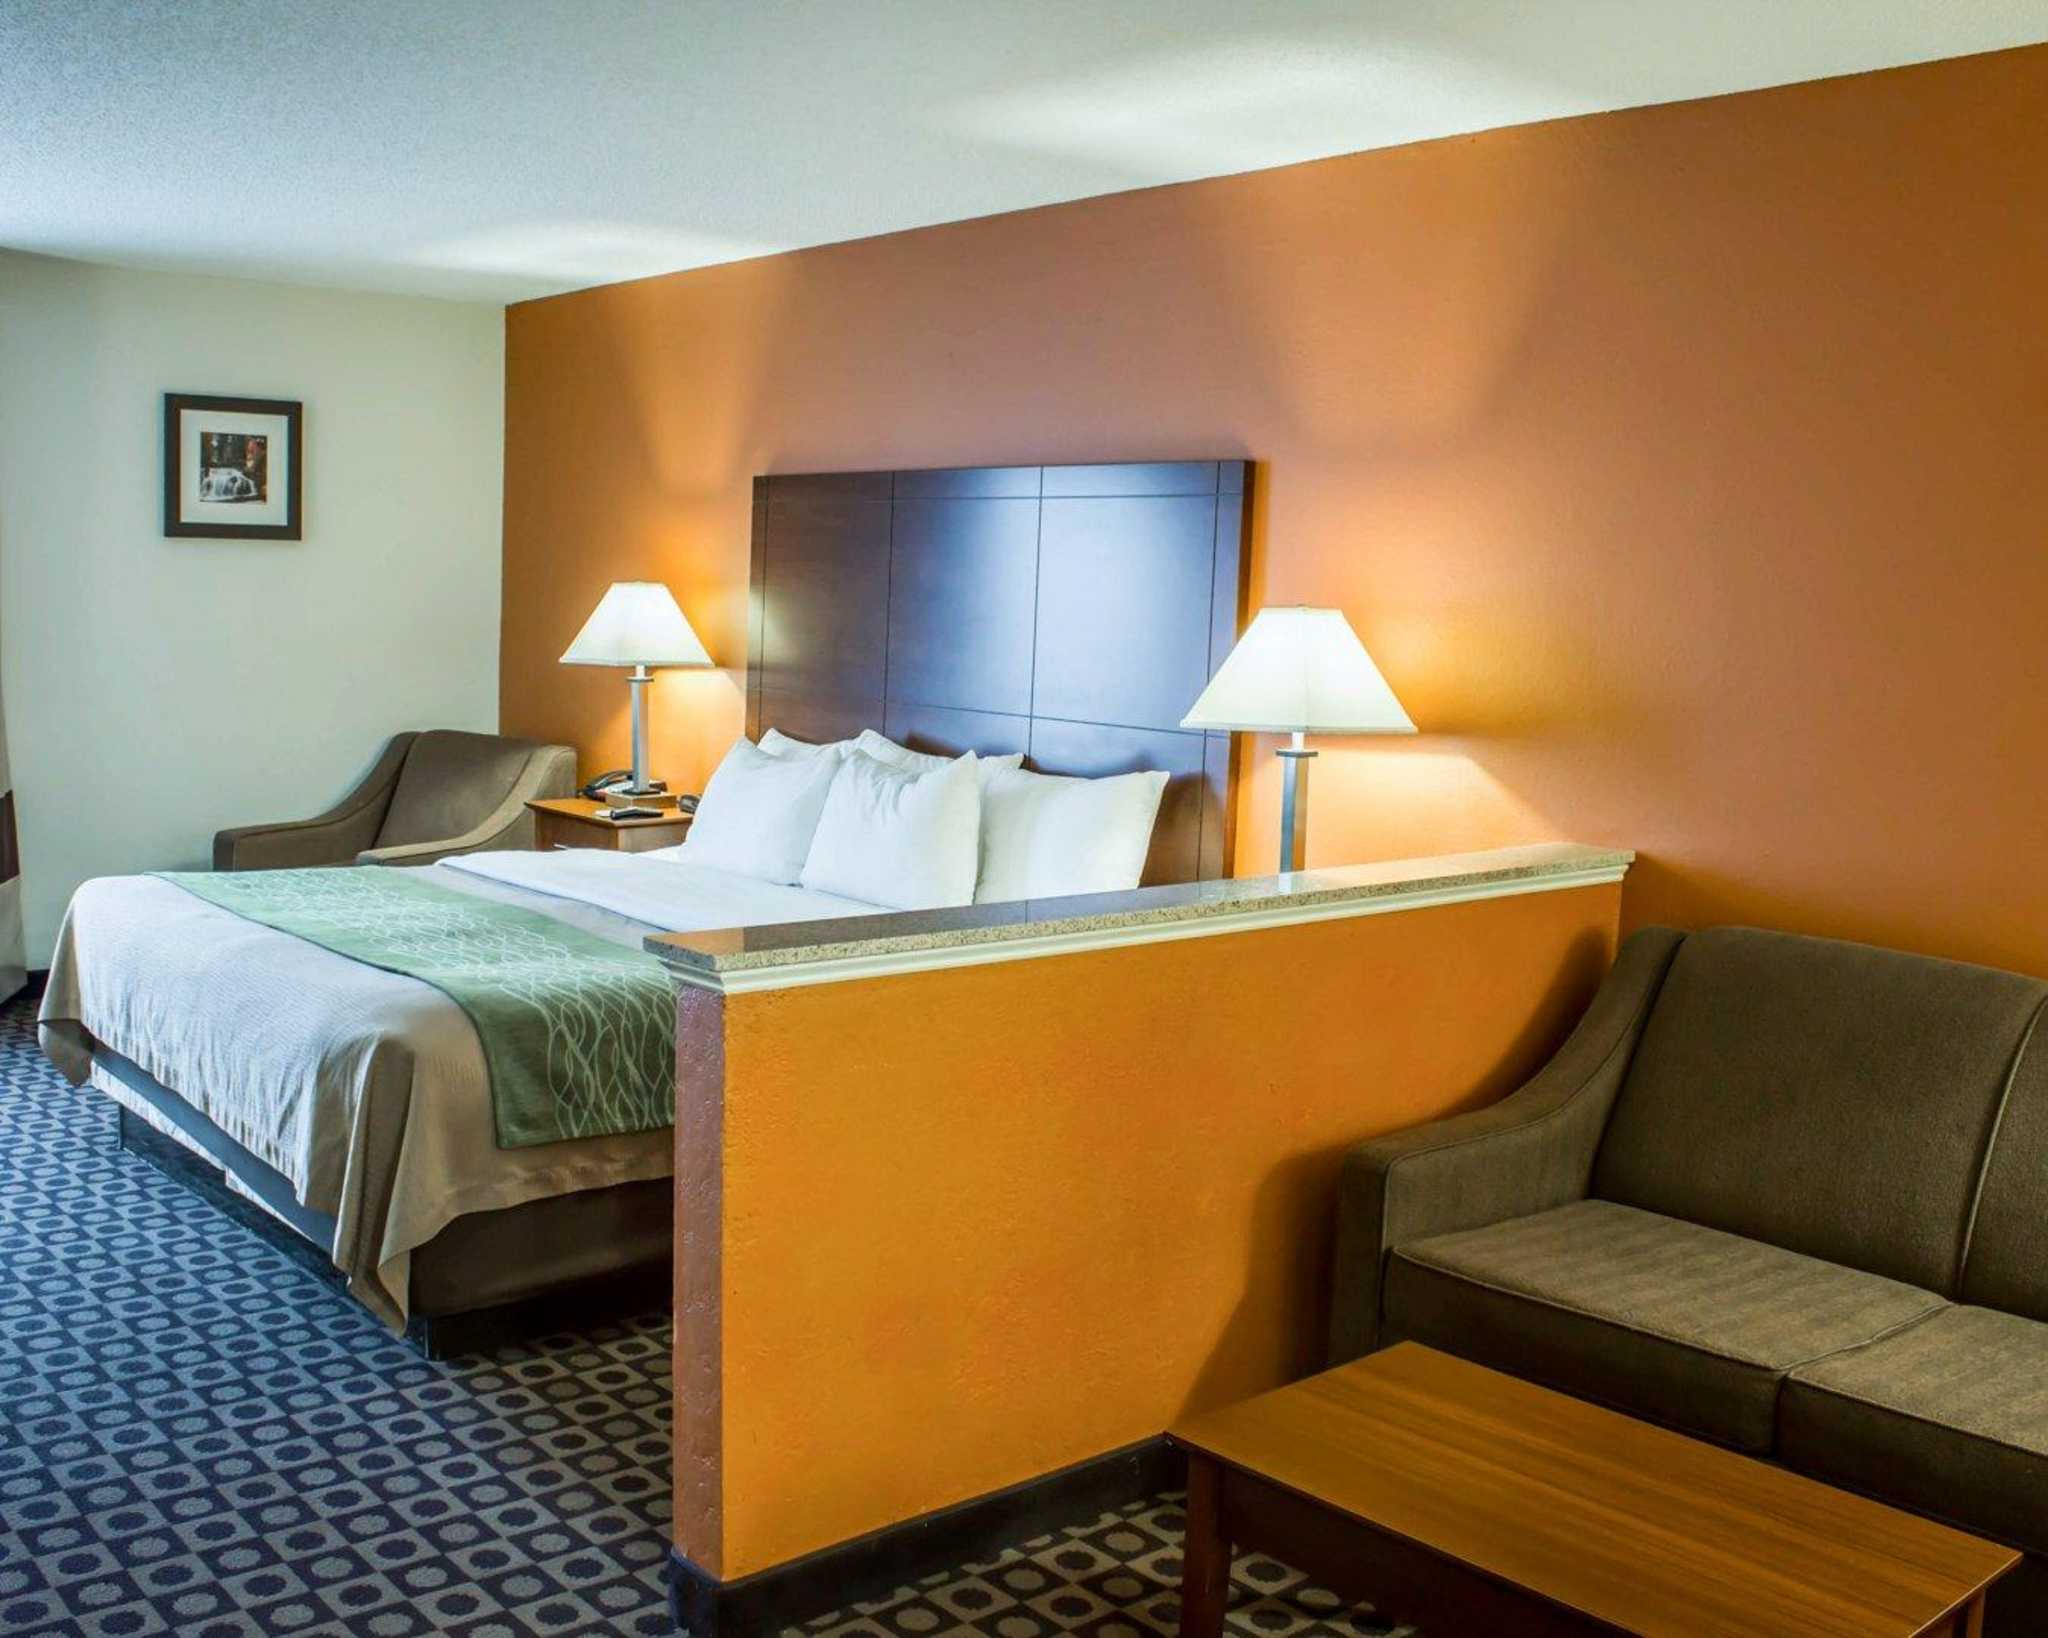 Hotels In Fayetteville Nc With Hot Tub In Room